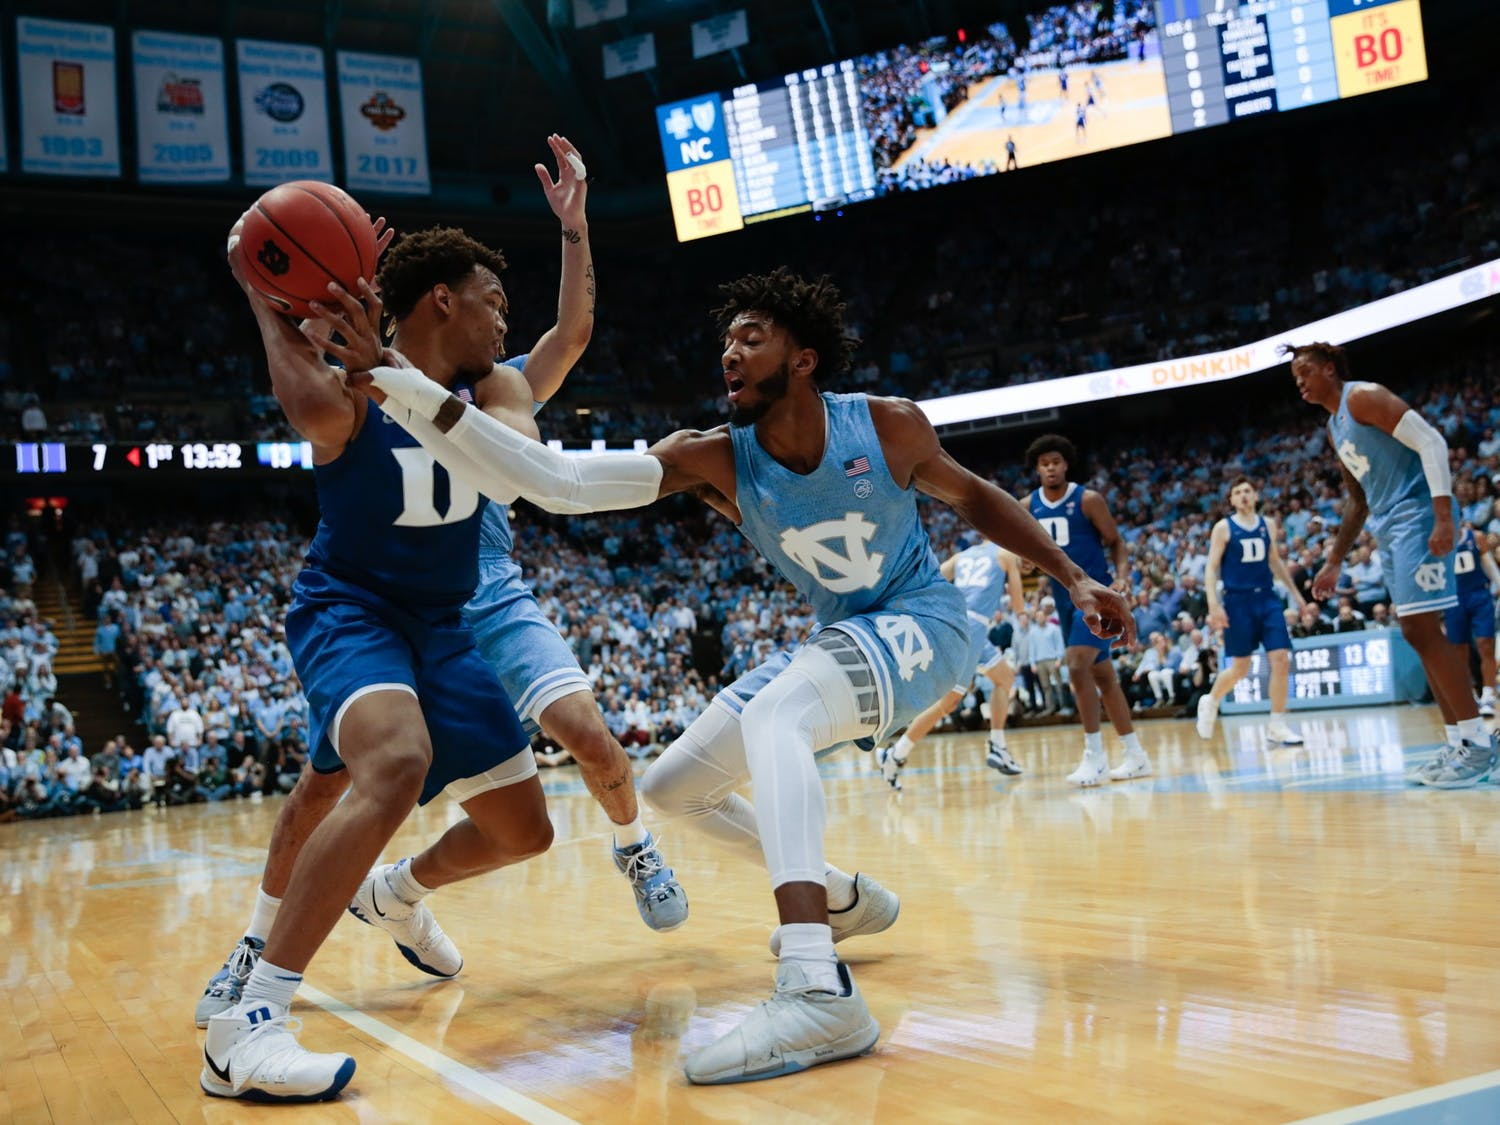 UNC sophomore Leaky Black attempts to steal the ball from a Duke player during the rivalry game in the Smith Center on Saturday, Feb. 8, 2020.